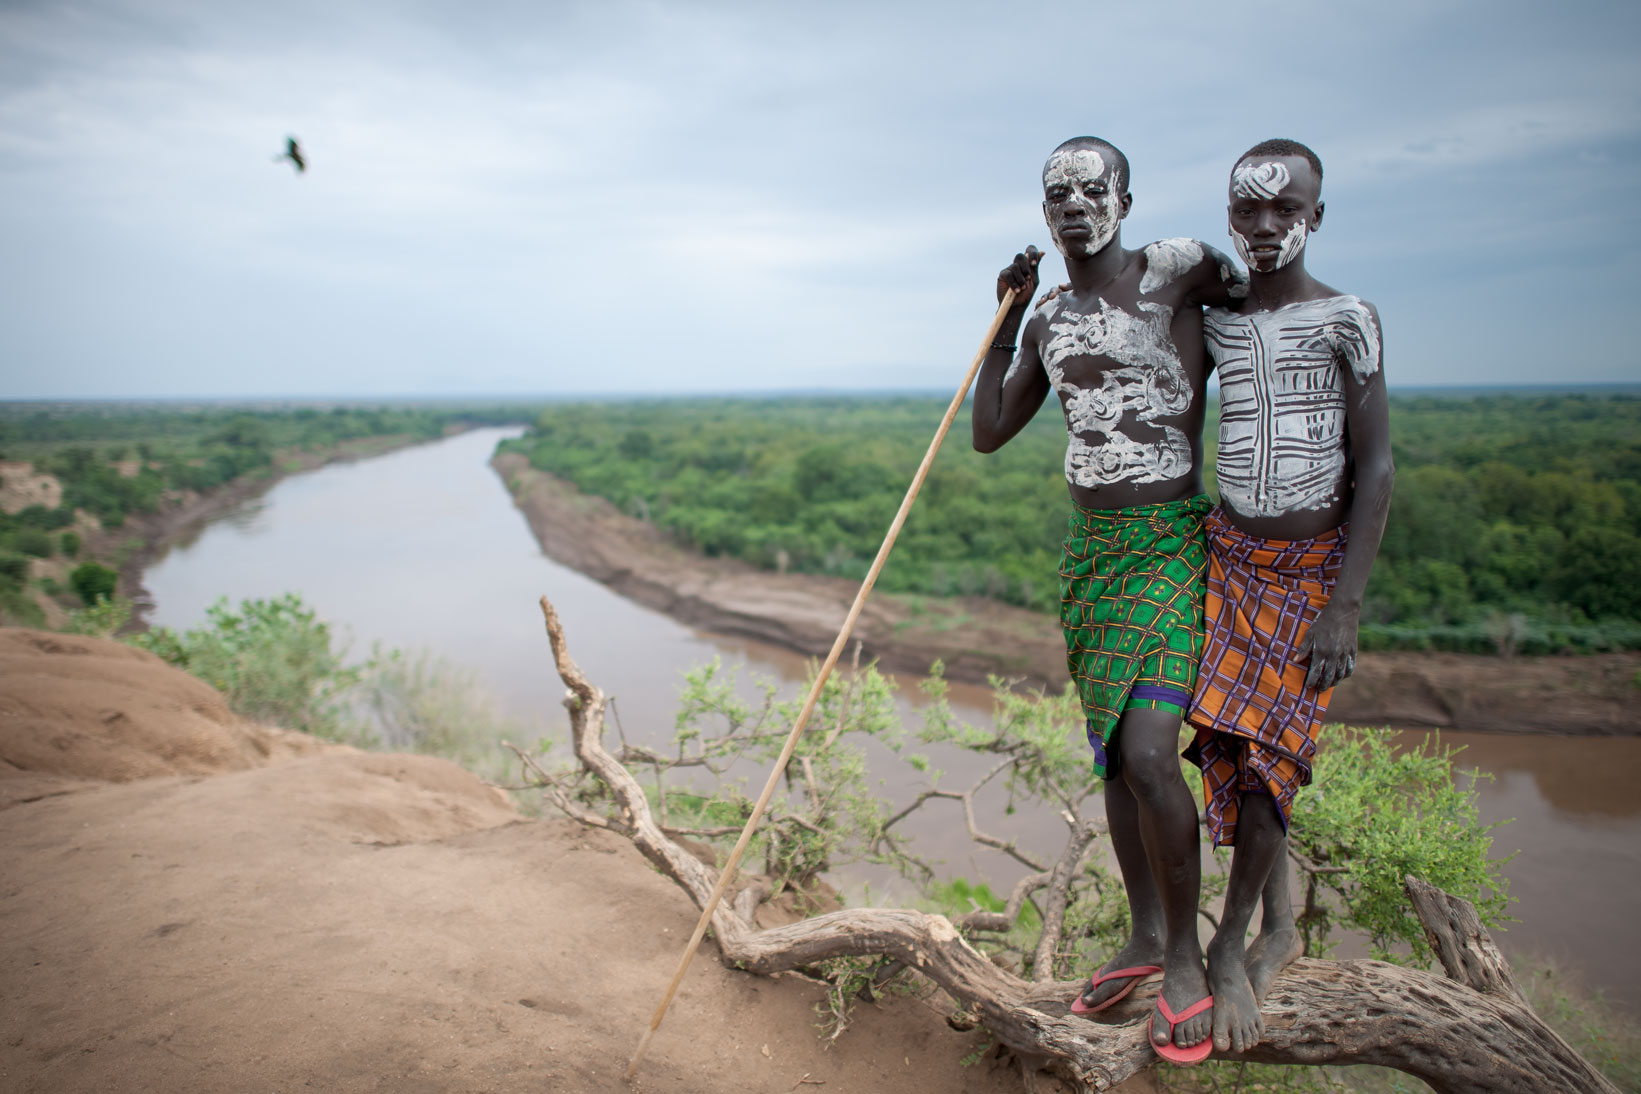 Karo tribal youth - Omo River Valley, Ethiopia